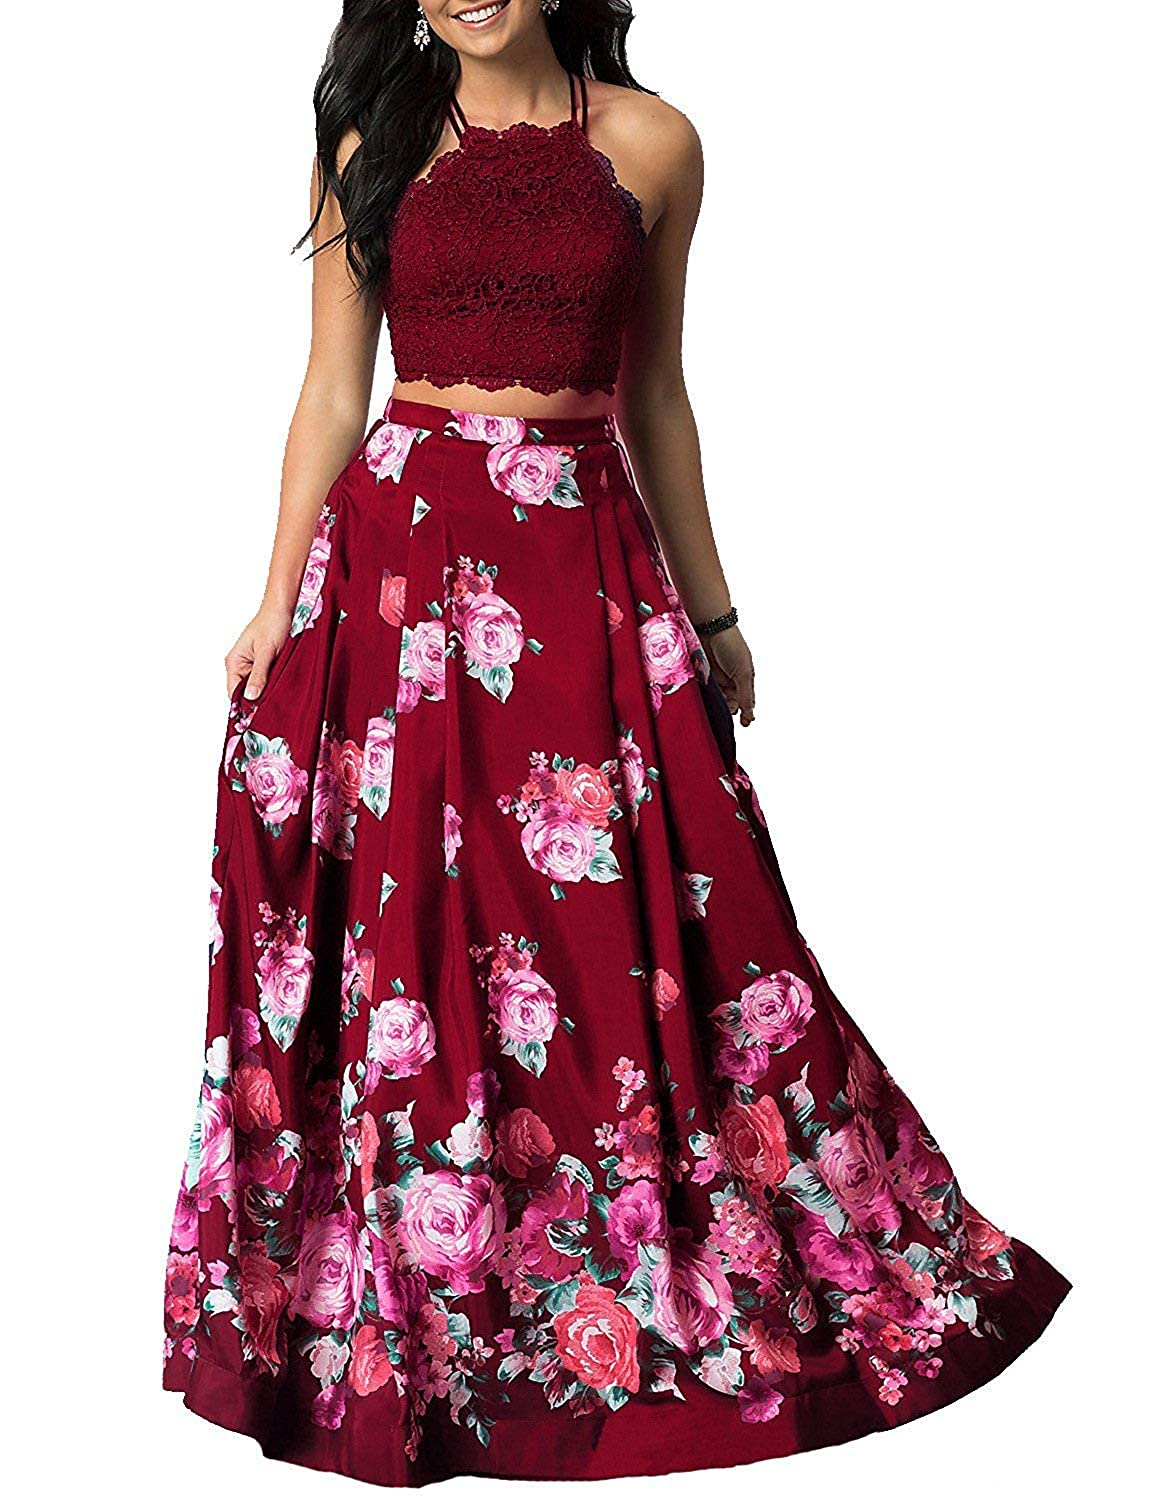 Burgundy Sulidi Women's Halter Two Pieces Floral Printed Prom Dresses Long Satin Pleated Evening Formal Gown C095